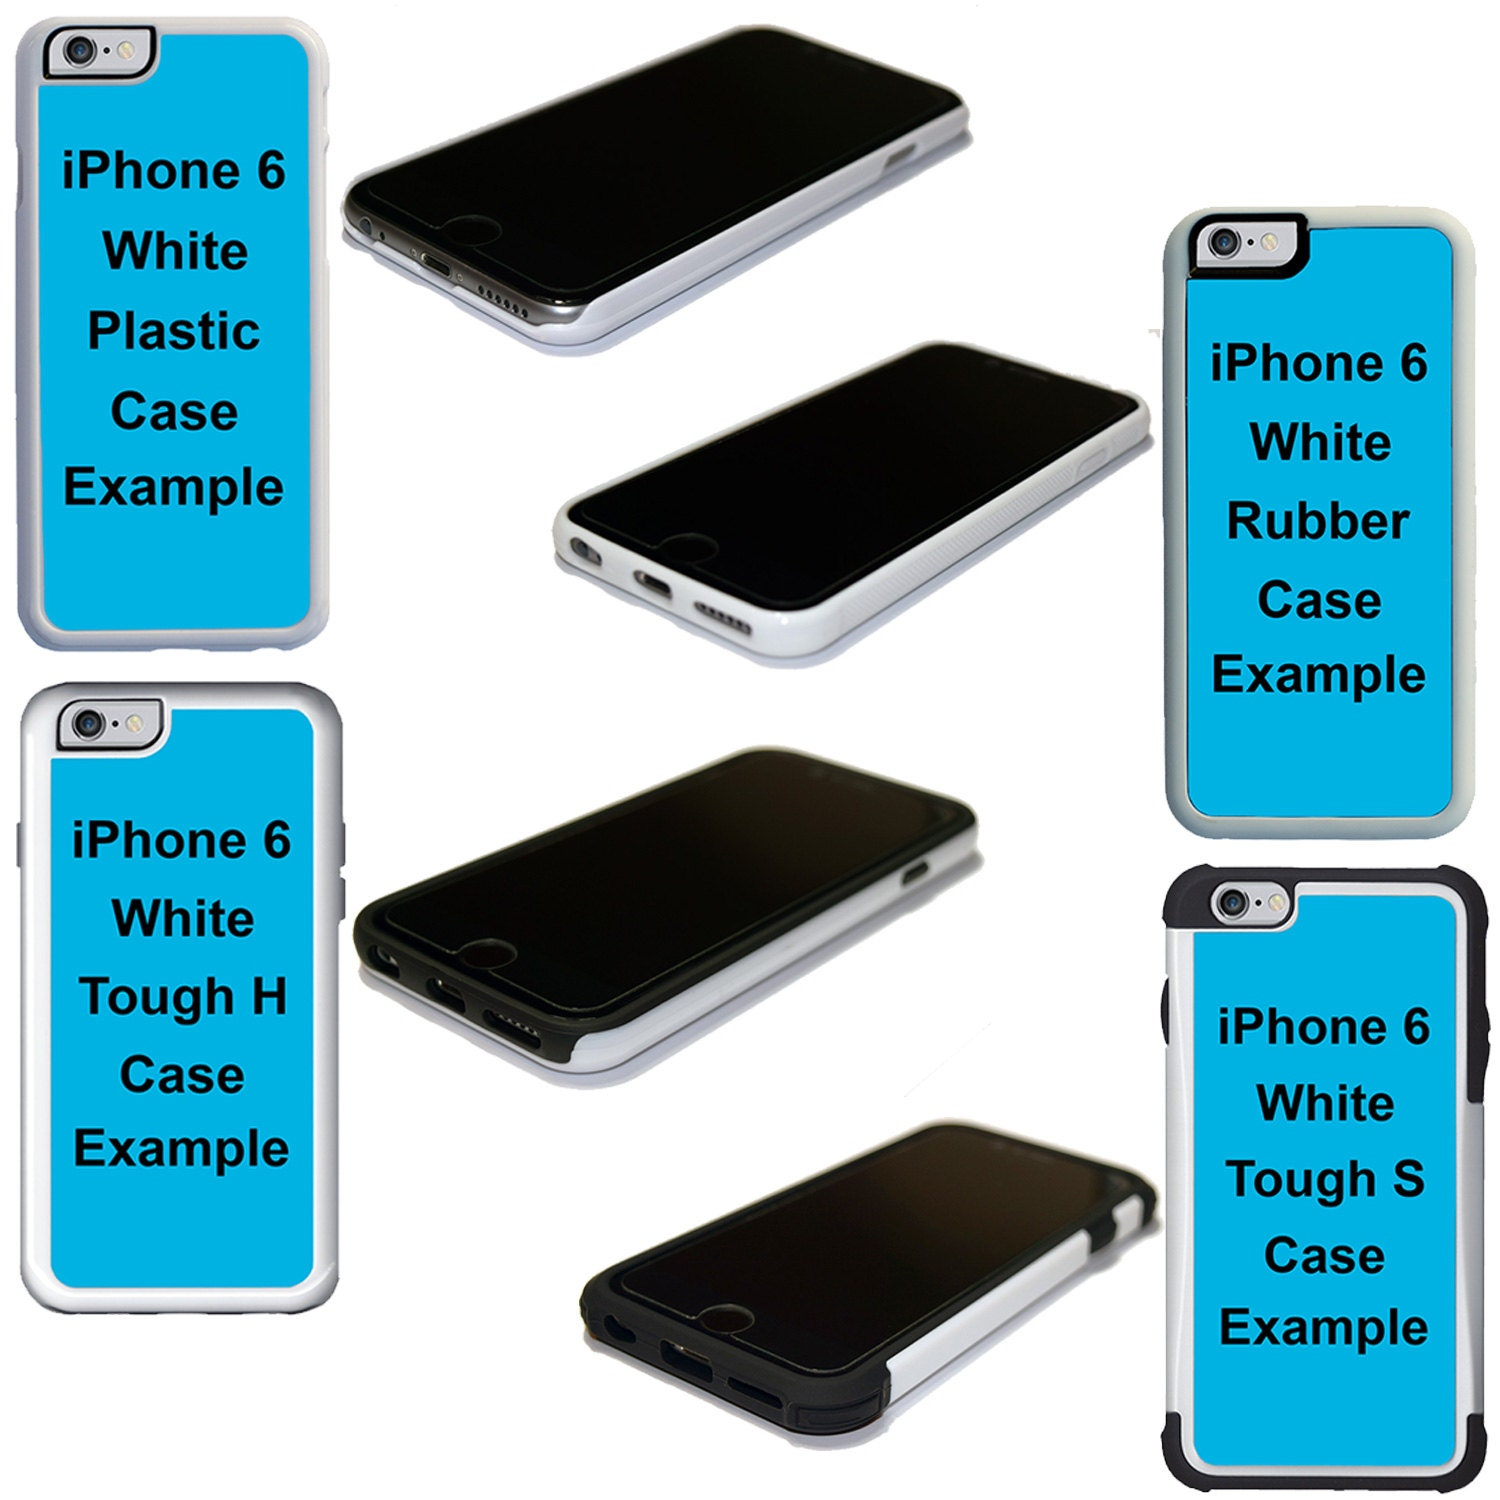 Fancy Anatomy Of Iphone 4s Composition - Anatomy and Physiology ...